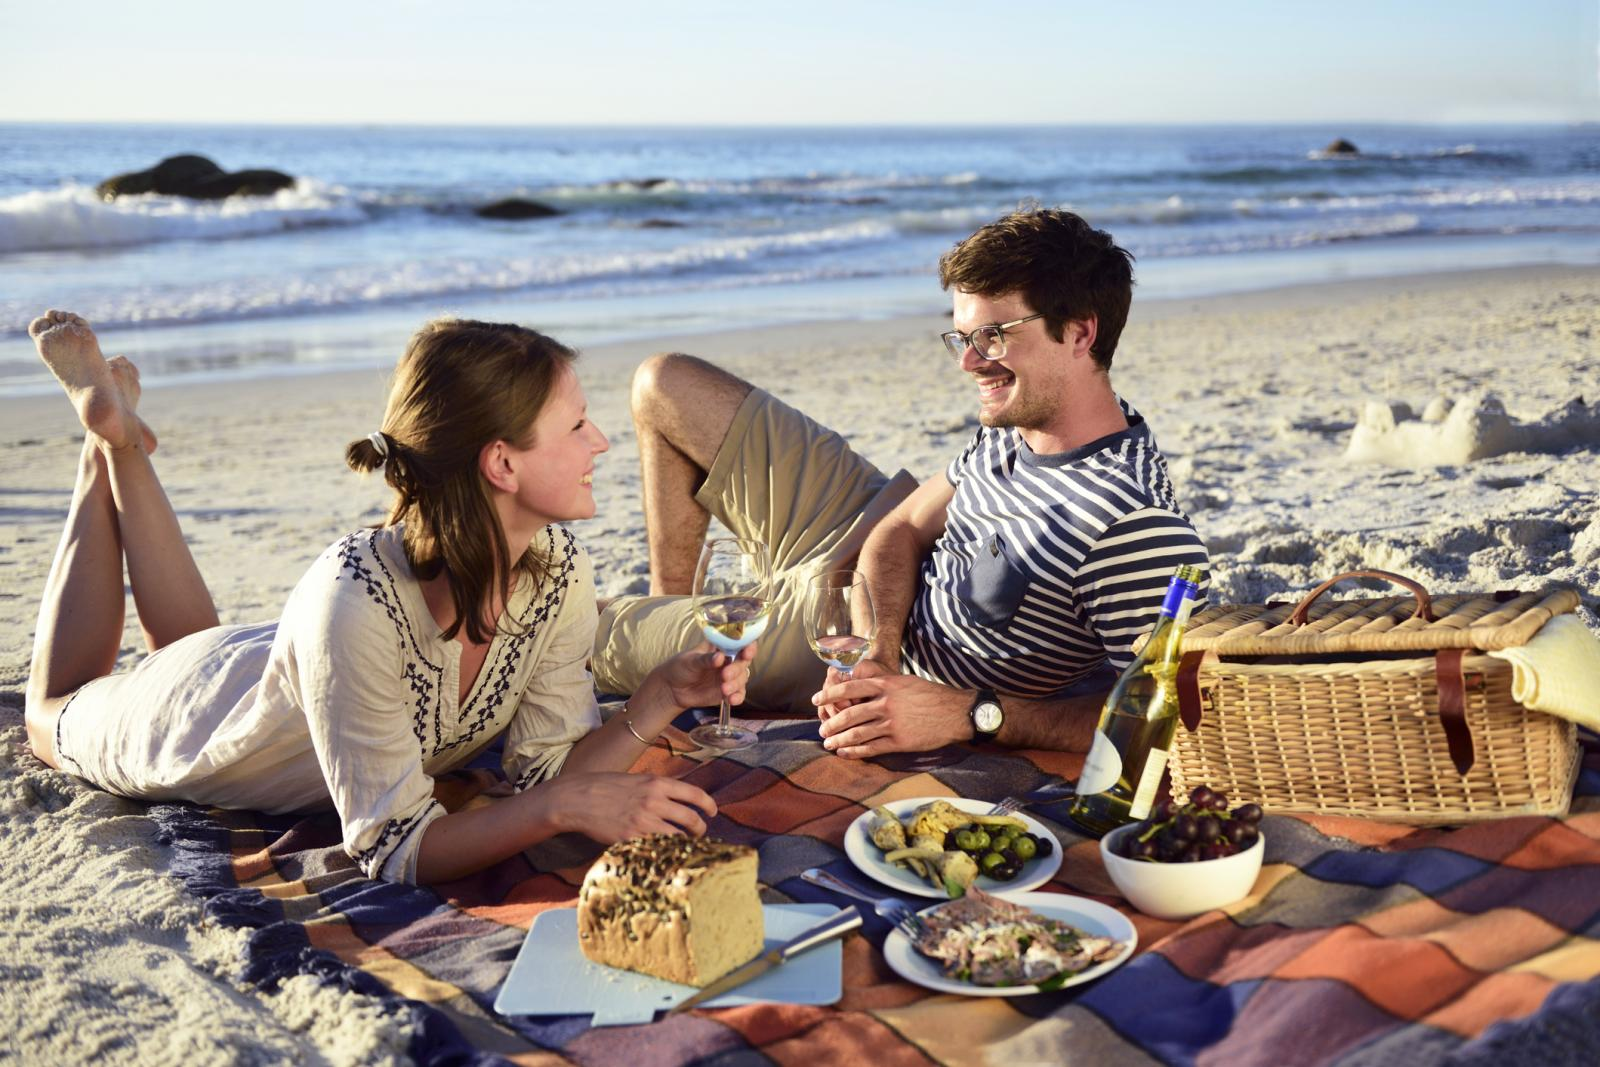 Happy couple having a picnic on the beach